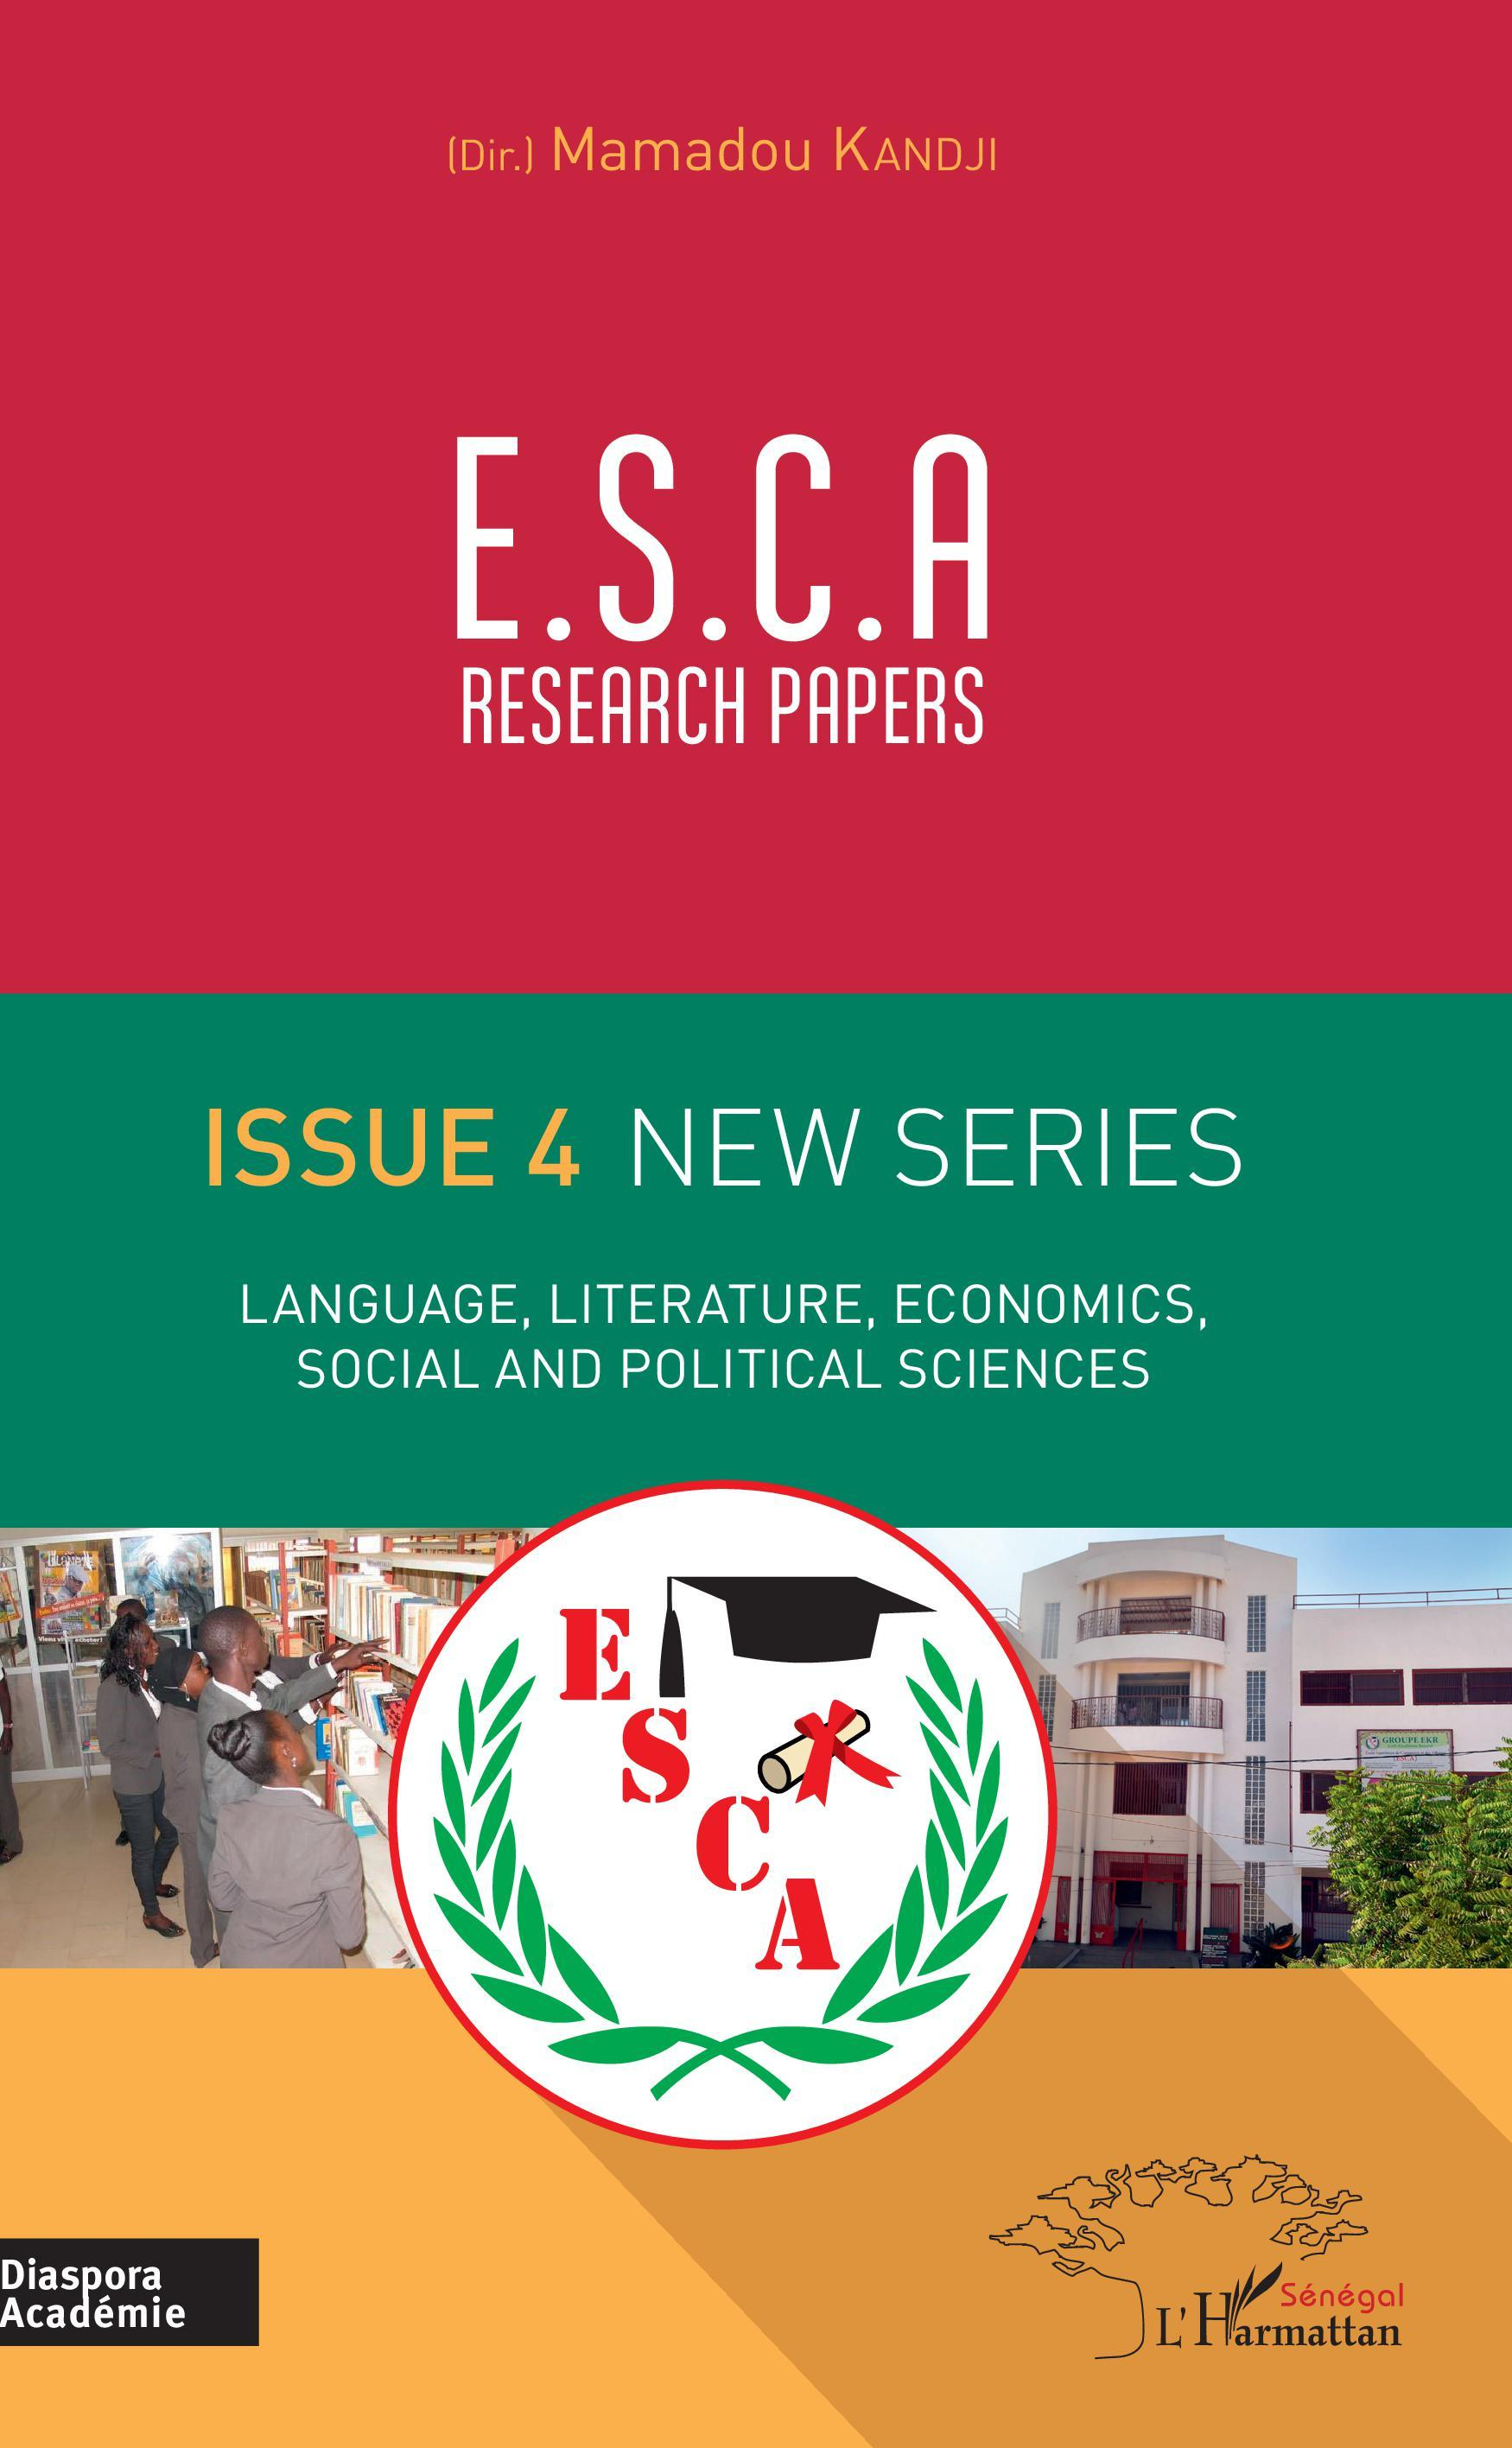 E.S.C.A. RESEARCH PAPERS ISSUE 4 NEW SERIES - LANGUAGE, LITERATURE, ECONOMICS, SOCIAL AND POLITICAL